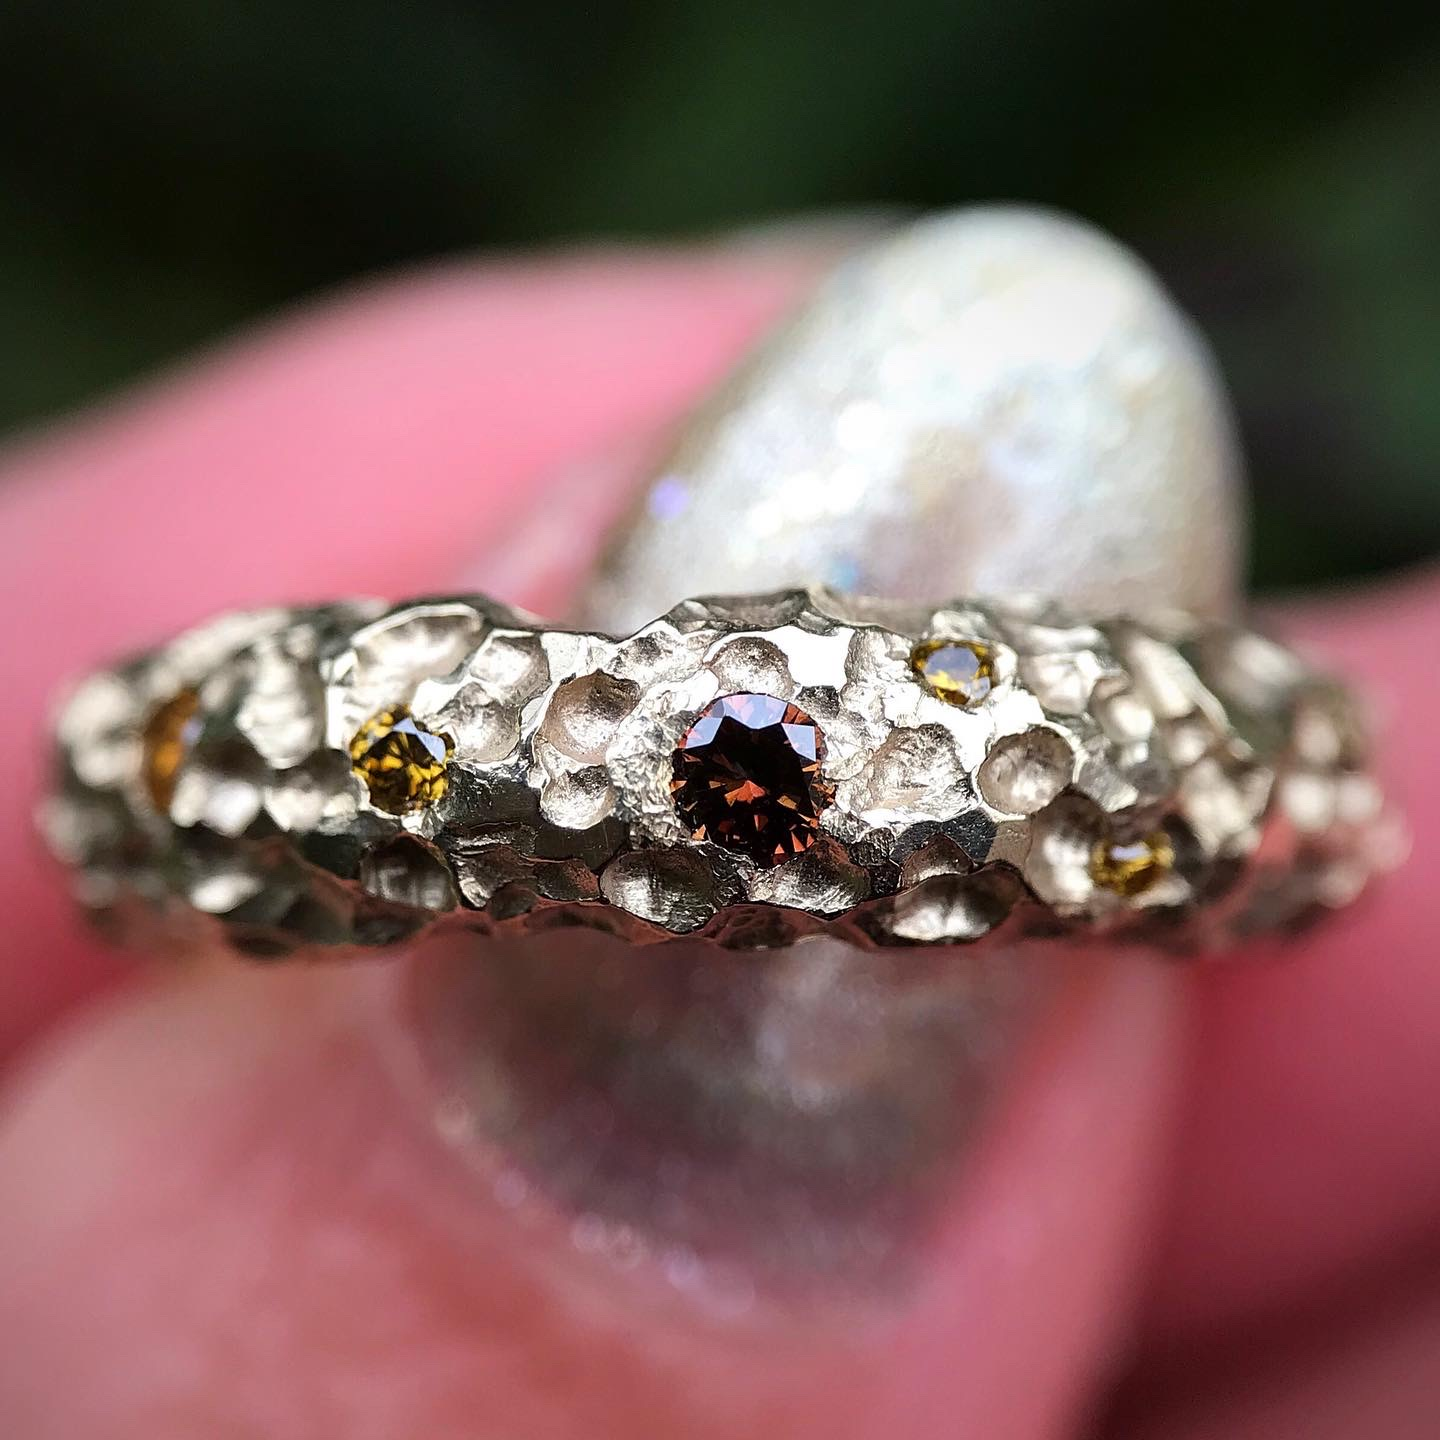 Hand carved alternative bridal 14k yellow gold engagement ring with organic texture and 15 champagne